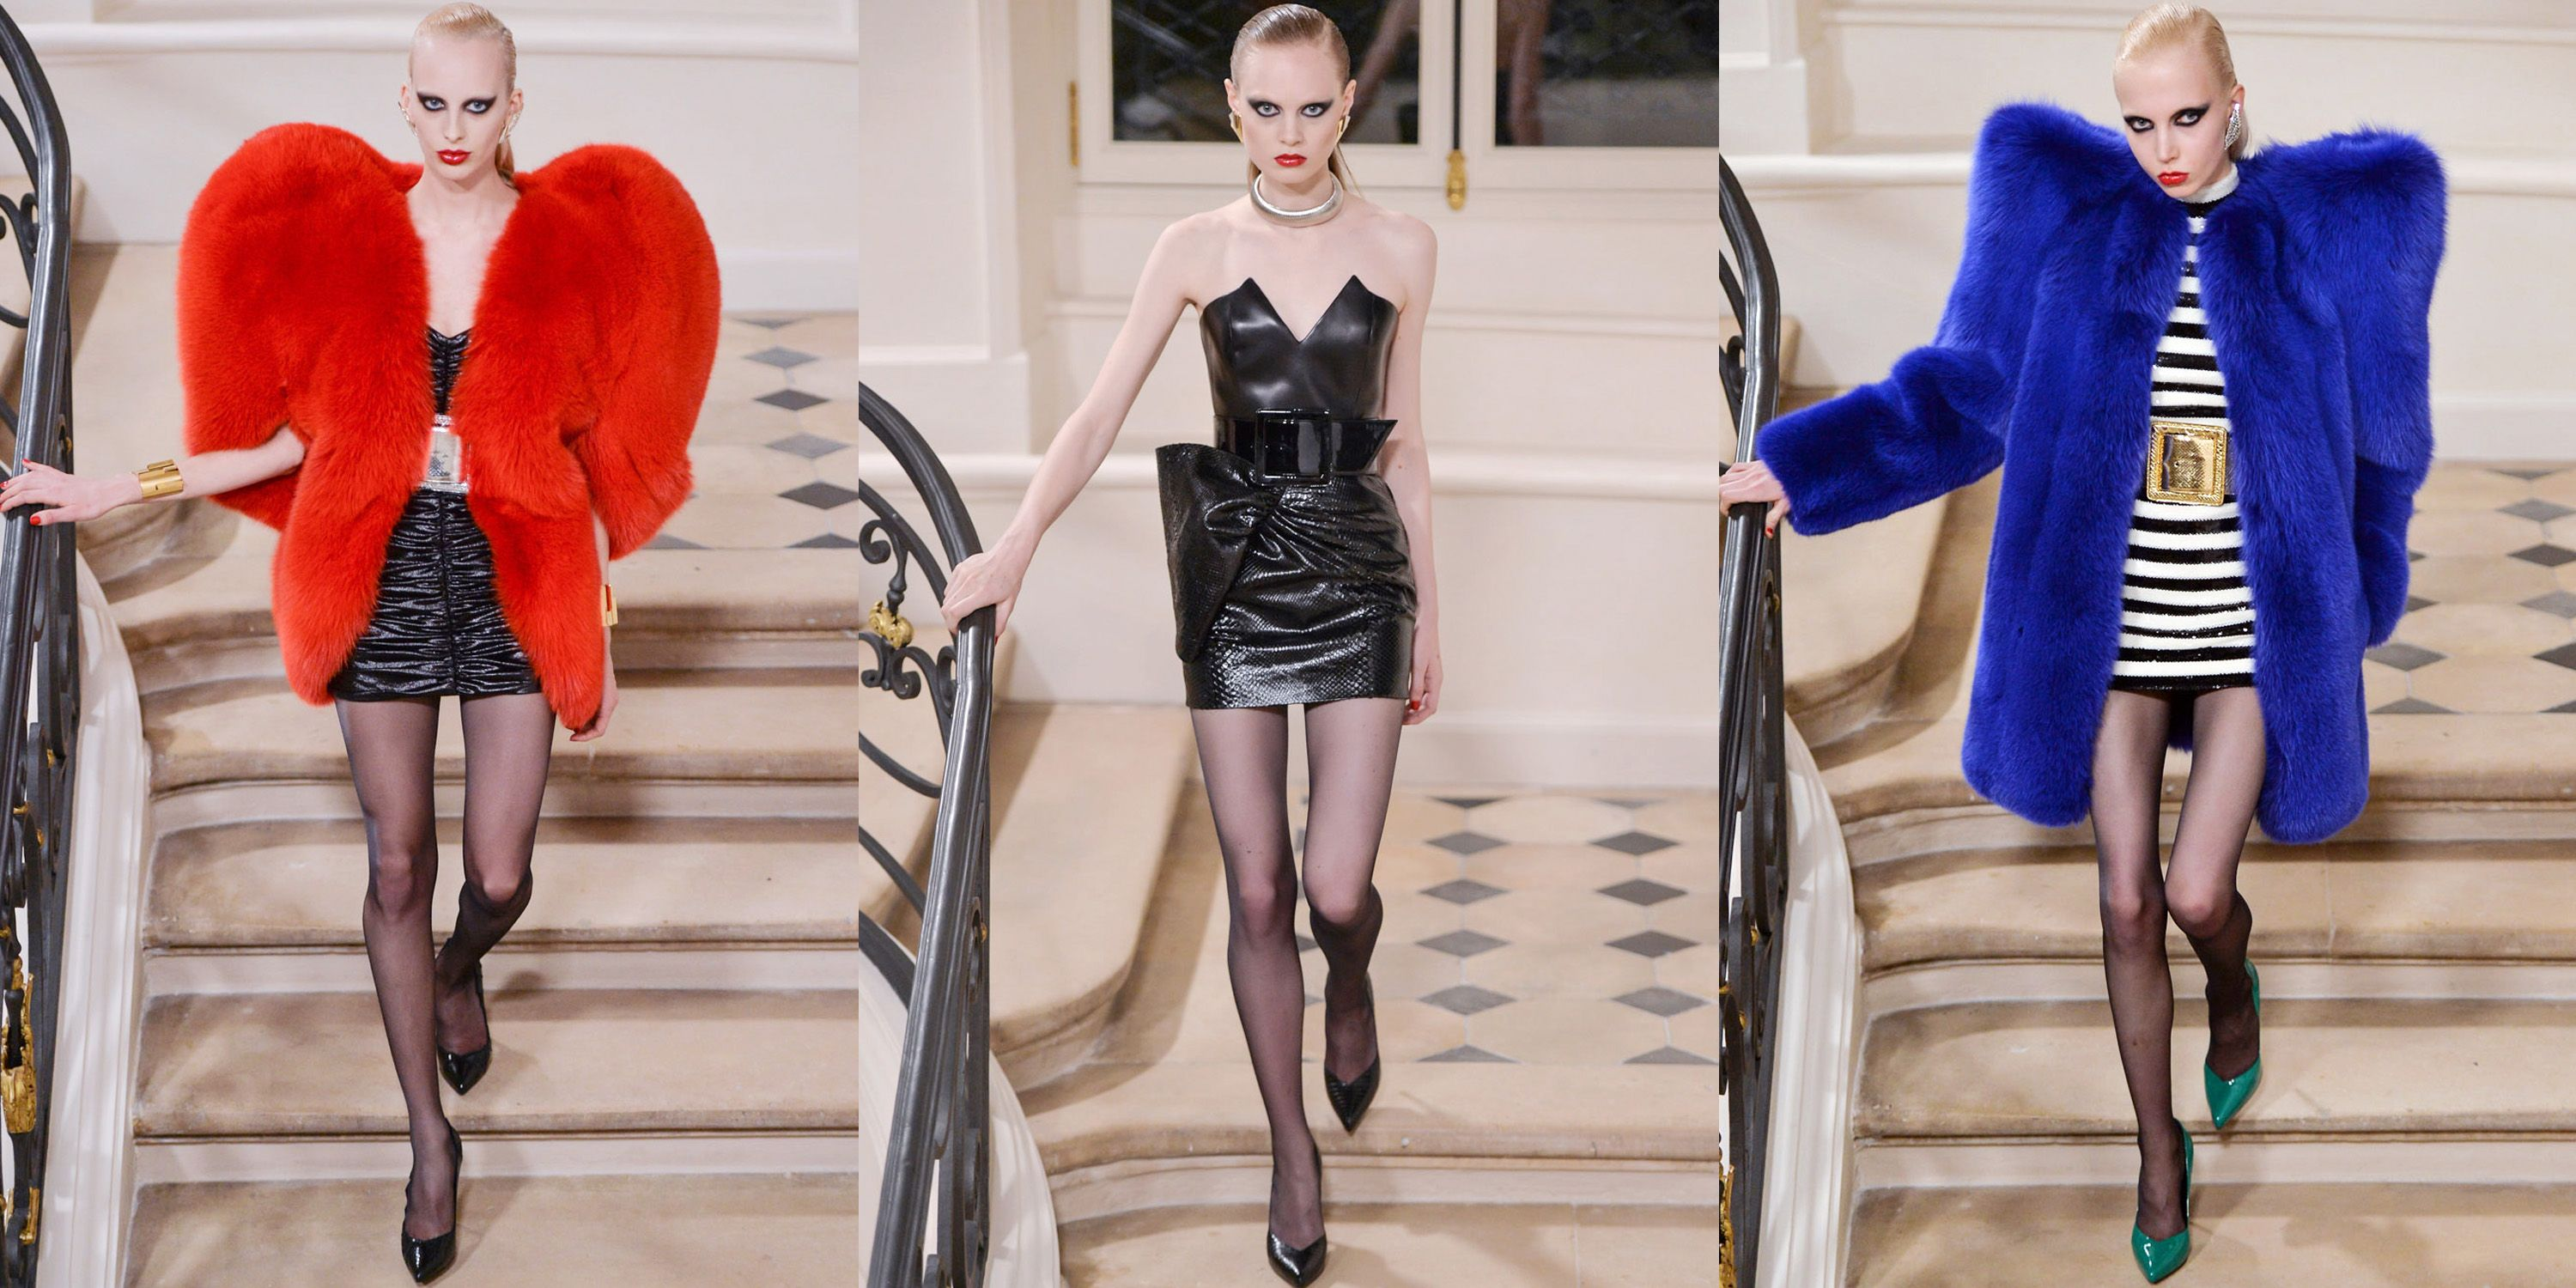 <p>For his final Saint Laurent collection, Hedi Slimane made quite the mark. The designer staged his own couture show for Fall 2016 in Paris at an 18th-century house on the Rue de l'Université. The collection looked to the 1980s couture scene for inspiration, featuring plunging dresses, strong-shouldered silhouettes, triangular earrings and a show-stopping red heart fur coat that became the standout piece of the collection and was later worn by Rihanna. For Slimane, it was the ultimate way to end his four-year tenure at the fashion house with impact. </p>